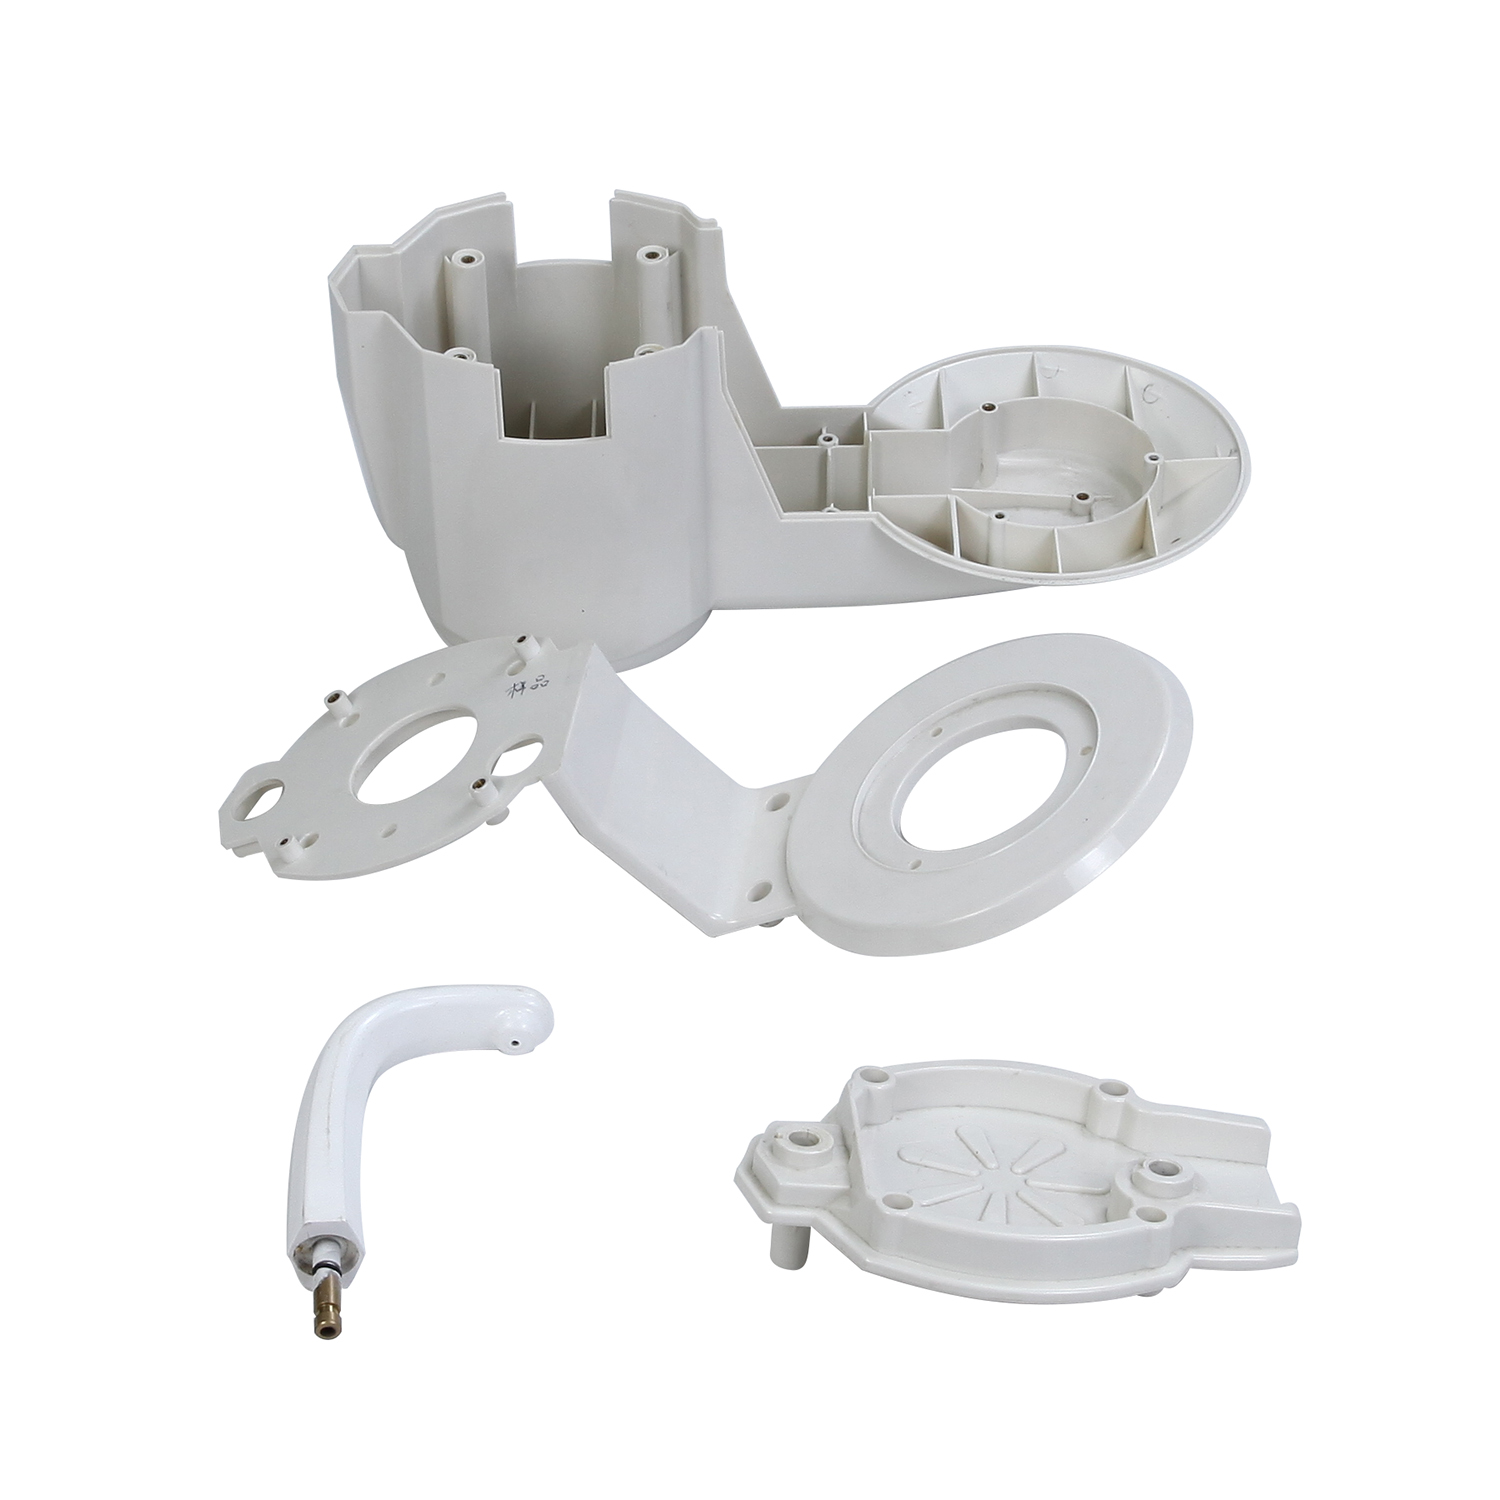 Good quality plastic part molding companies custom pc abs injection molding in china